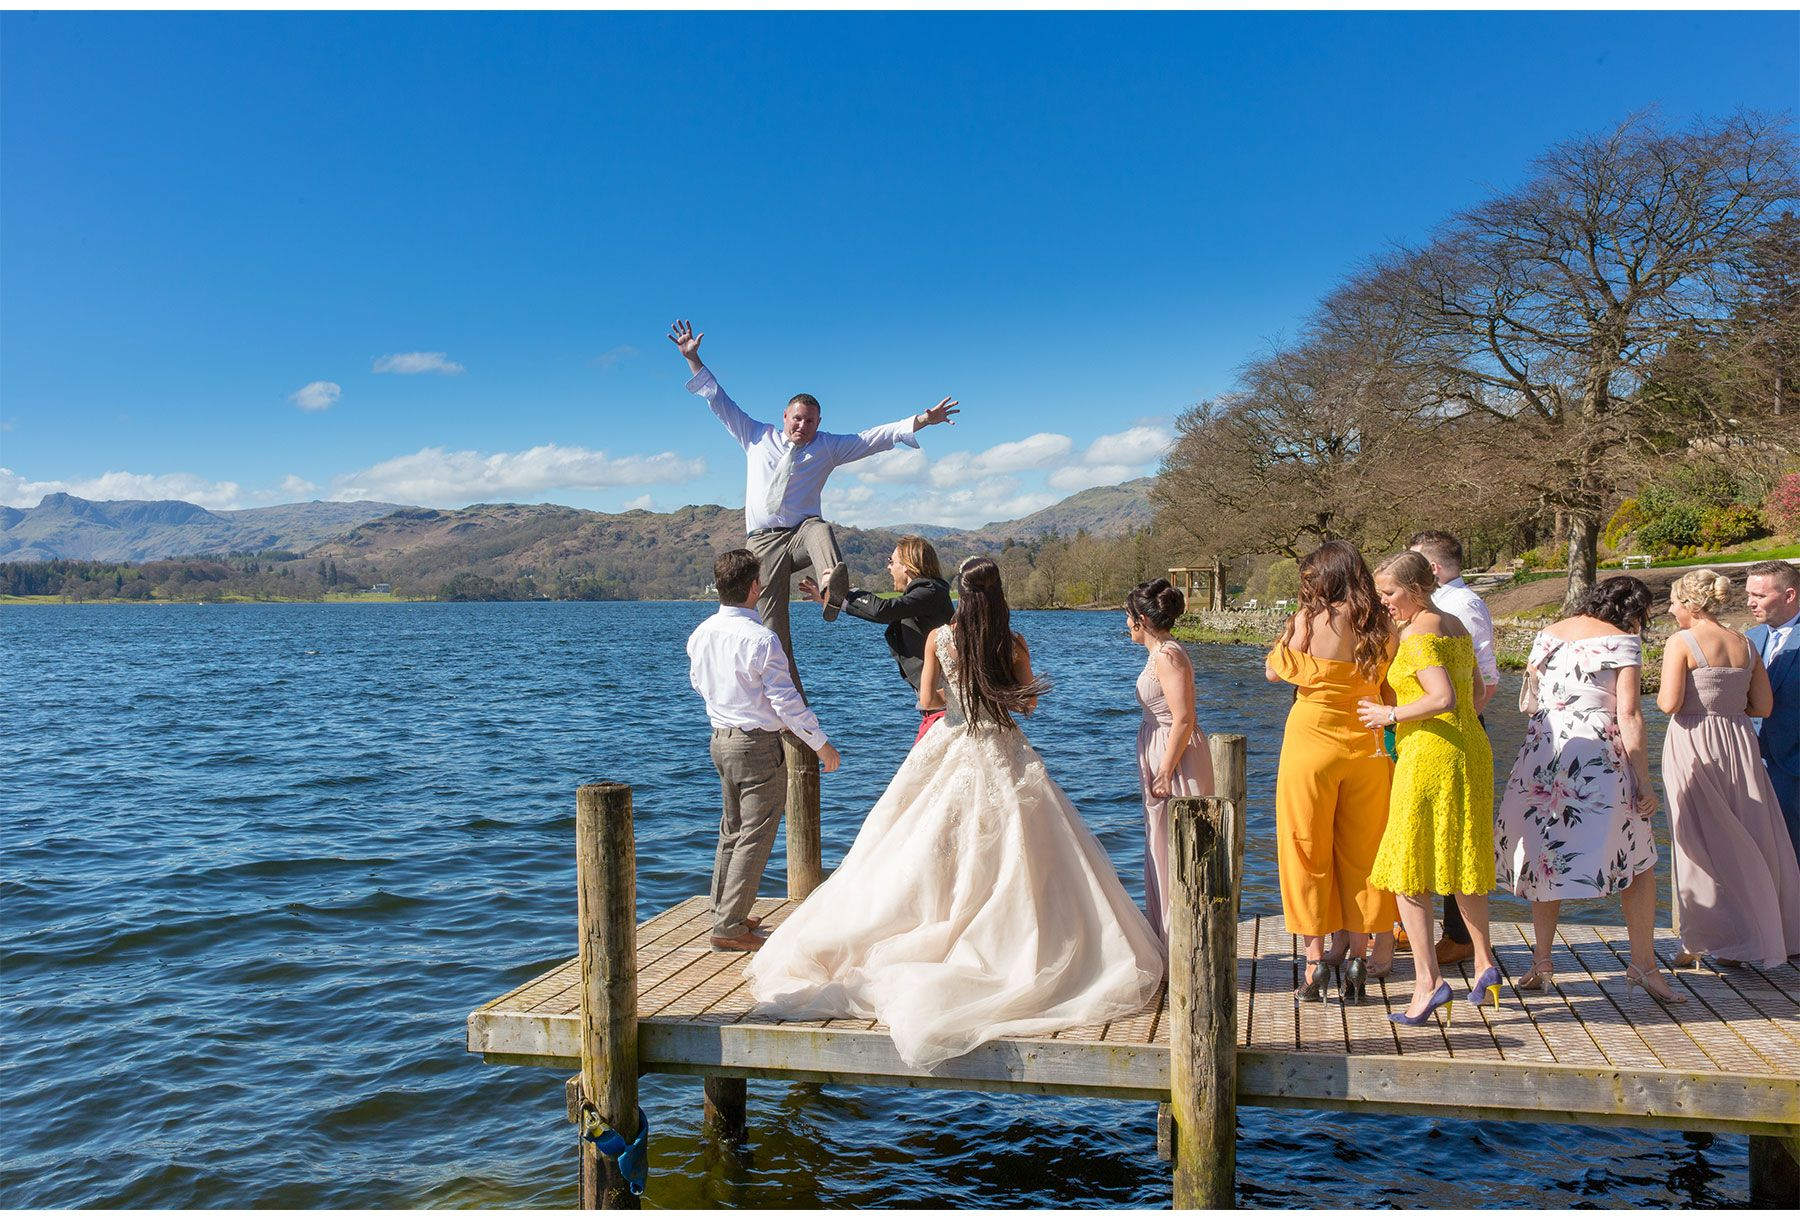 the groom messing around on the jetty